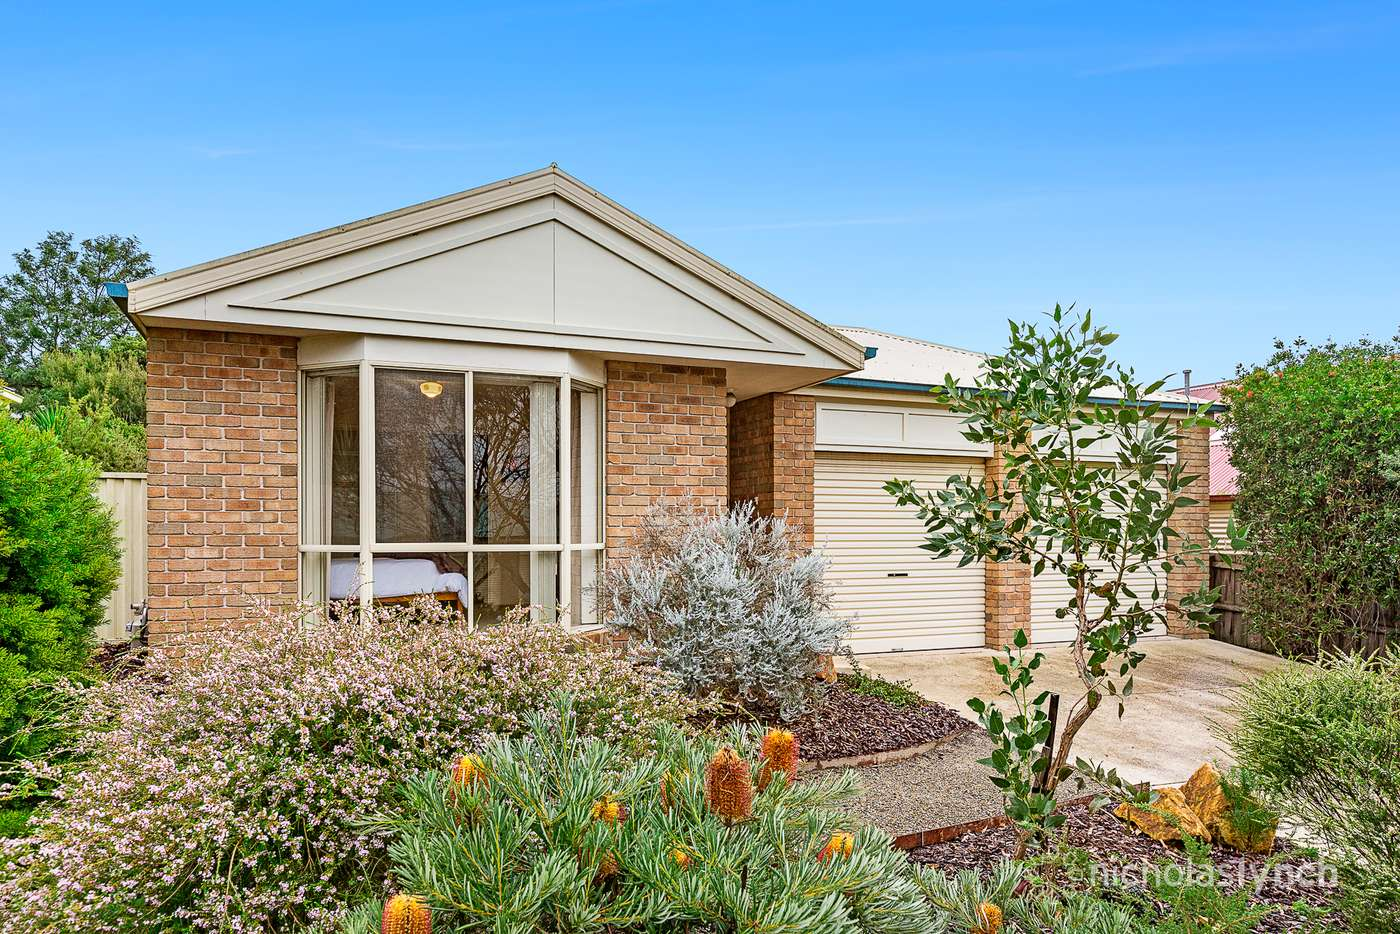 Main view of Homely house listing, 12 Lawson Court, Mornington VIC 3931